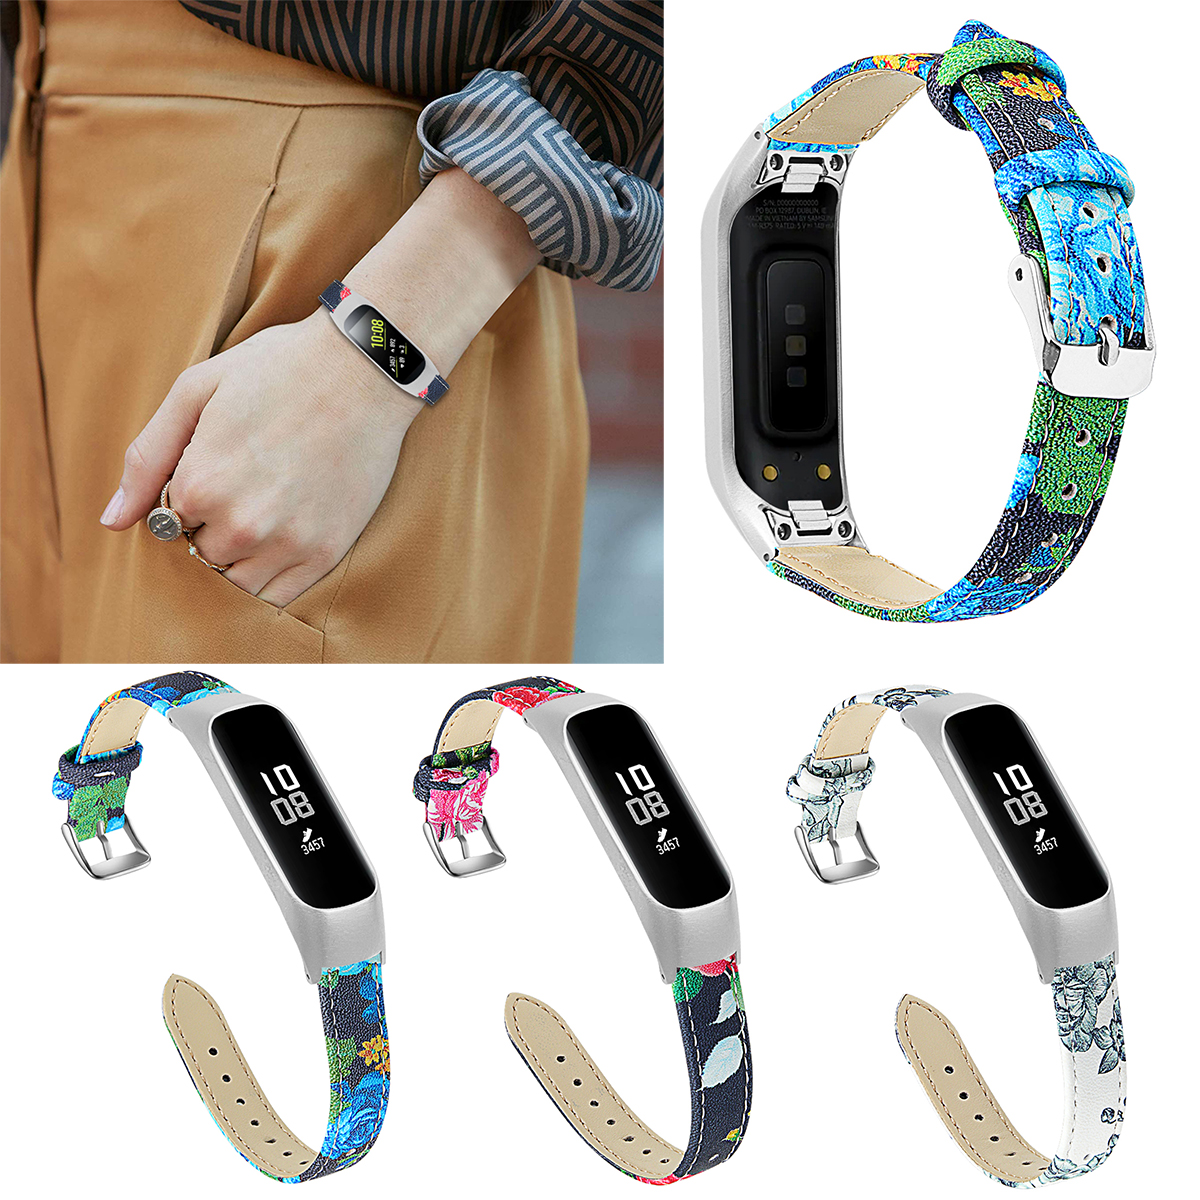 2019 Stainless Steel Watch Strap Wrist Band Strap For Samsung Galaxy Fit-e R375 Smart Bracelet Replacement Watch Band Strap